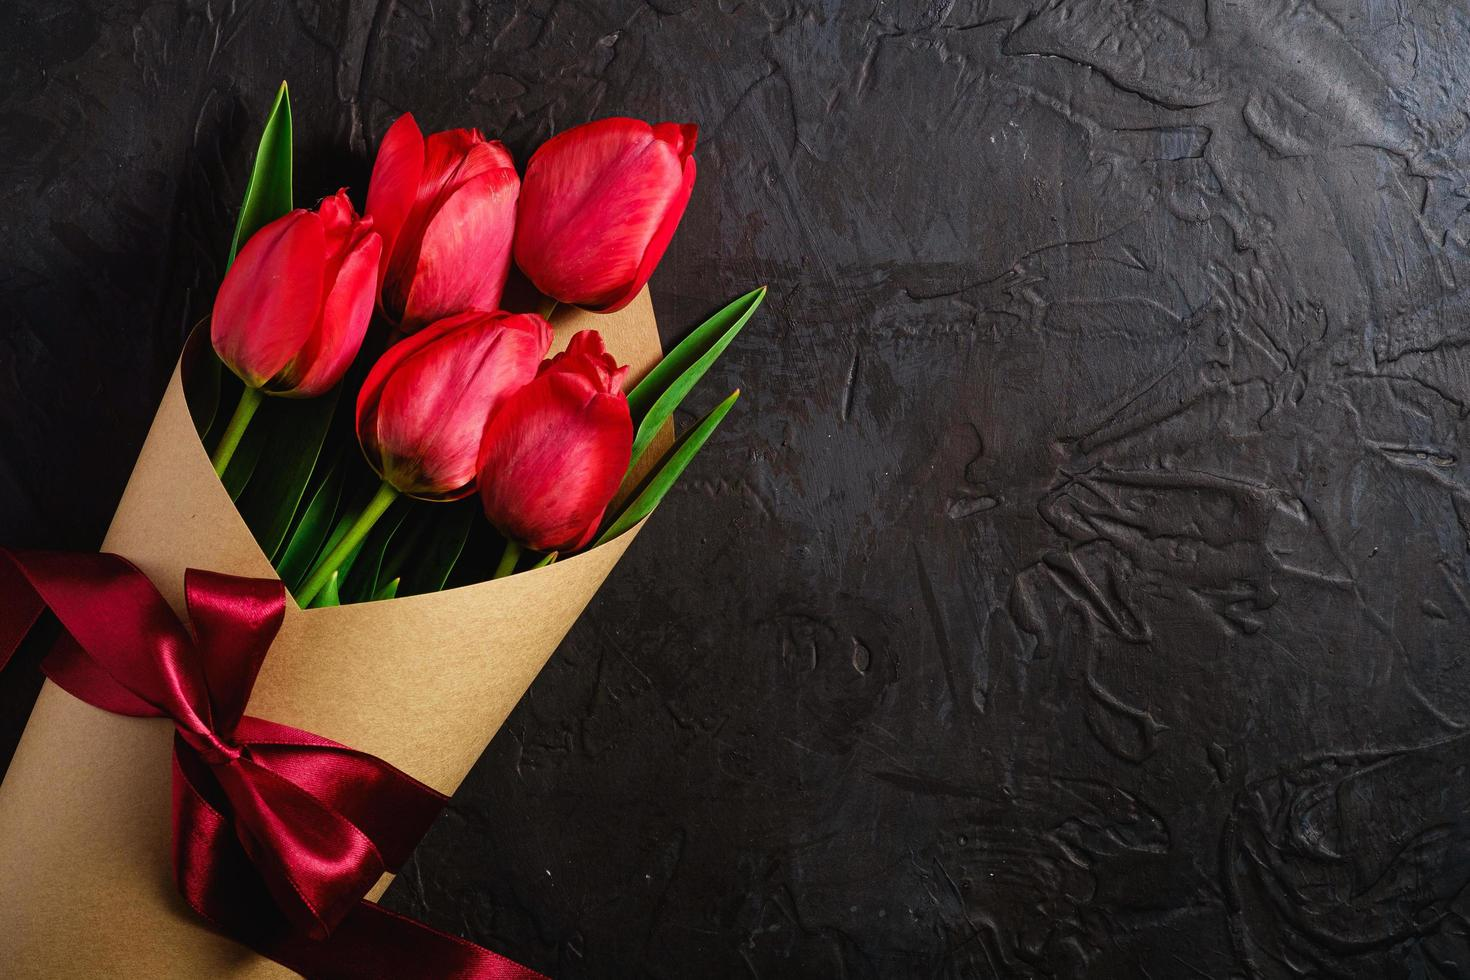 Bouquet of red tulips on textured black background photo